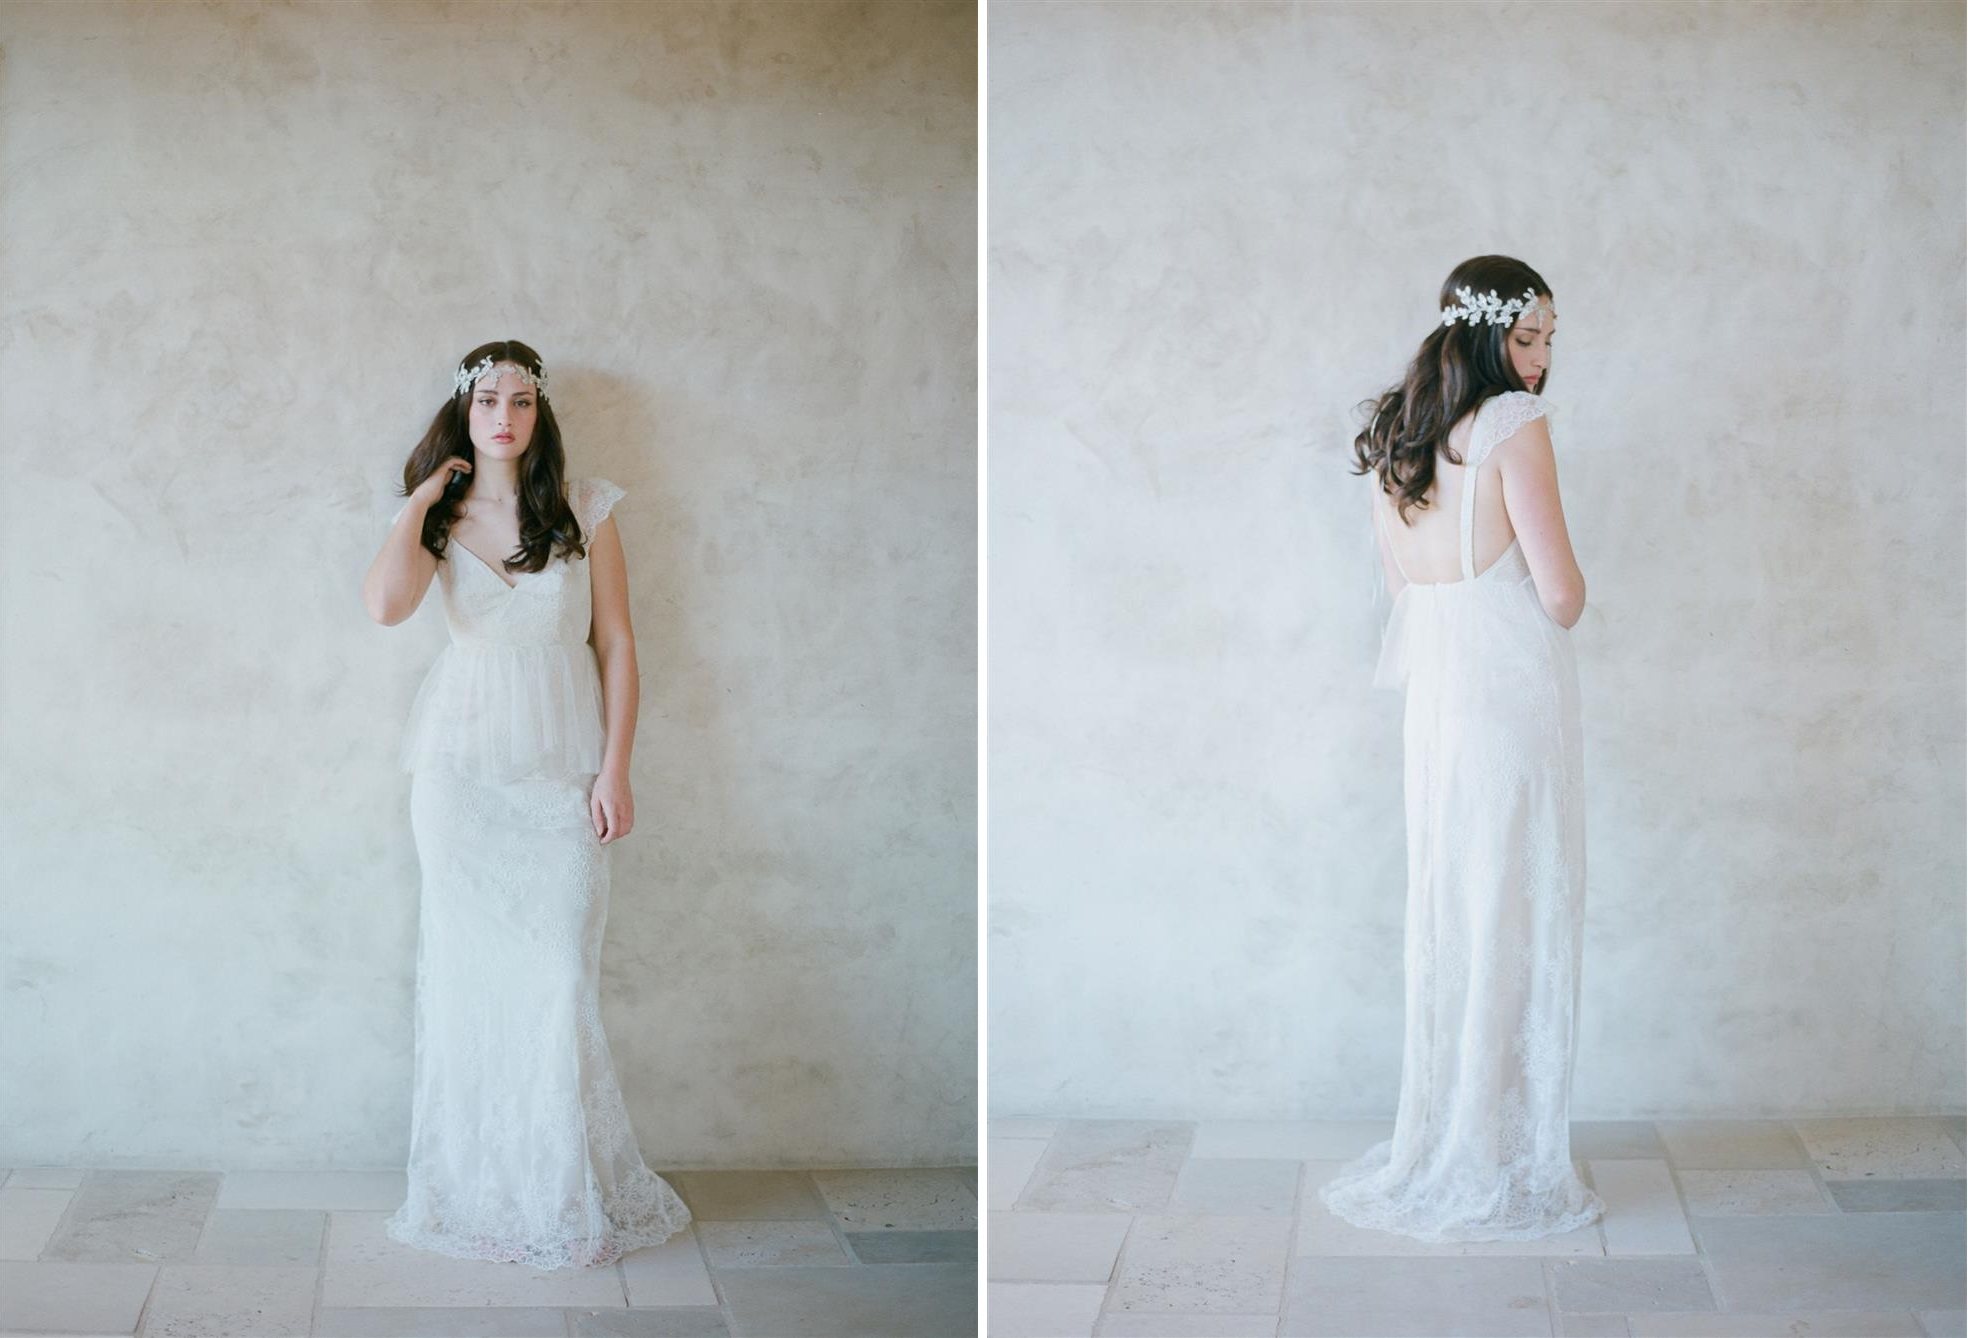 The Beautiful 2015 Wedding Dress Collection from Myra Callan for Twigs & Honey